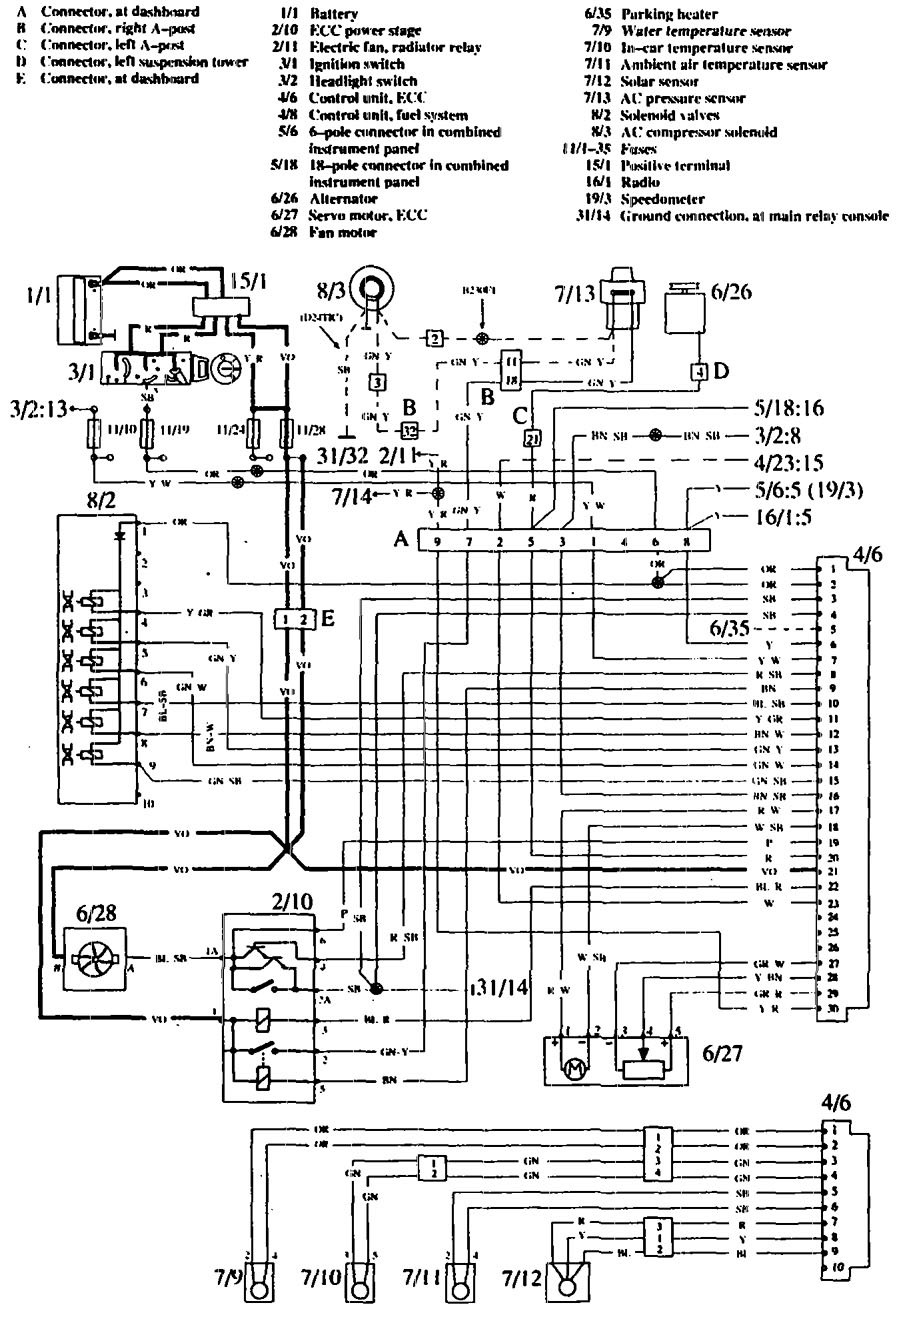 Volvo 760 Wiring Diagram Question About Semi Truck Diagrams 1990 29 Images Creativeand Co V70 Electrical